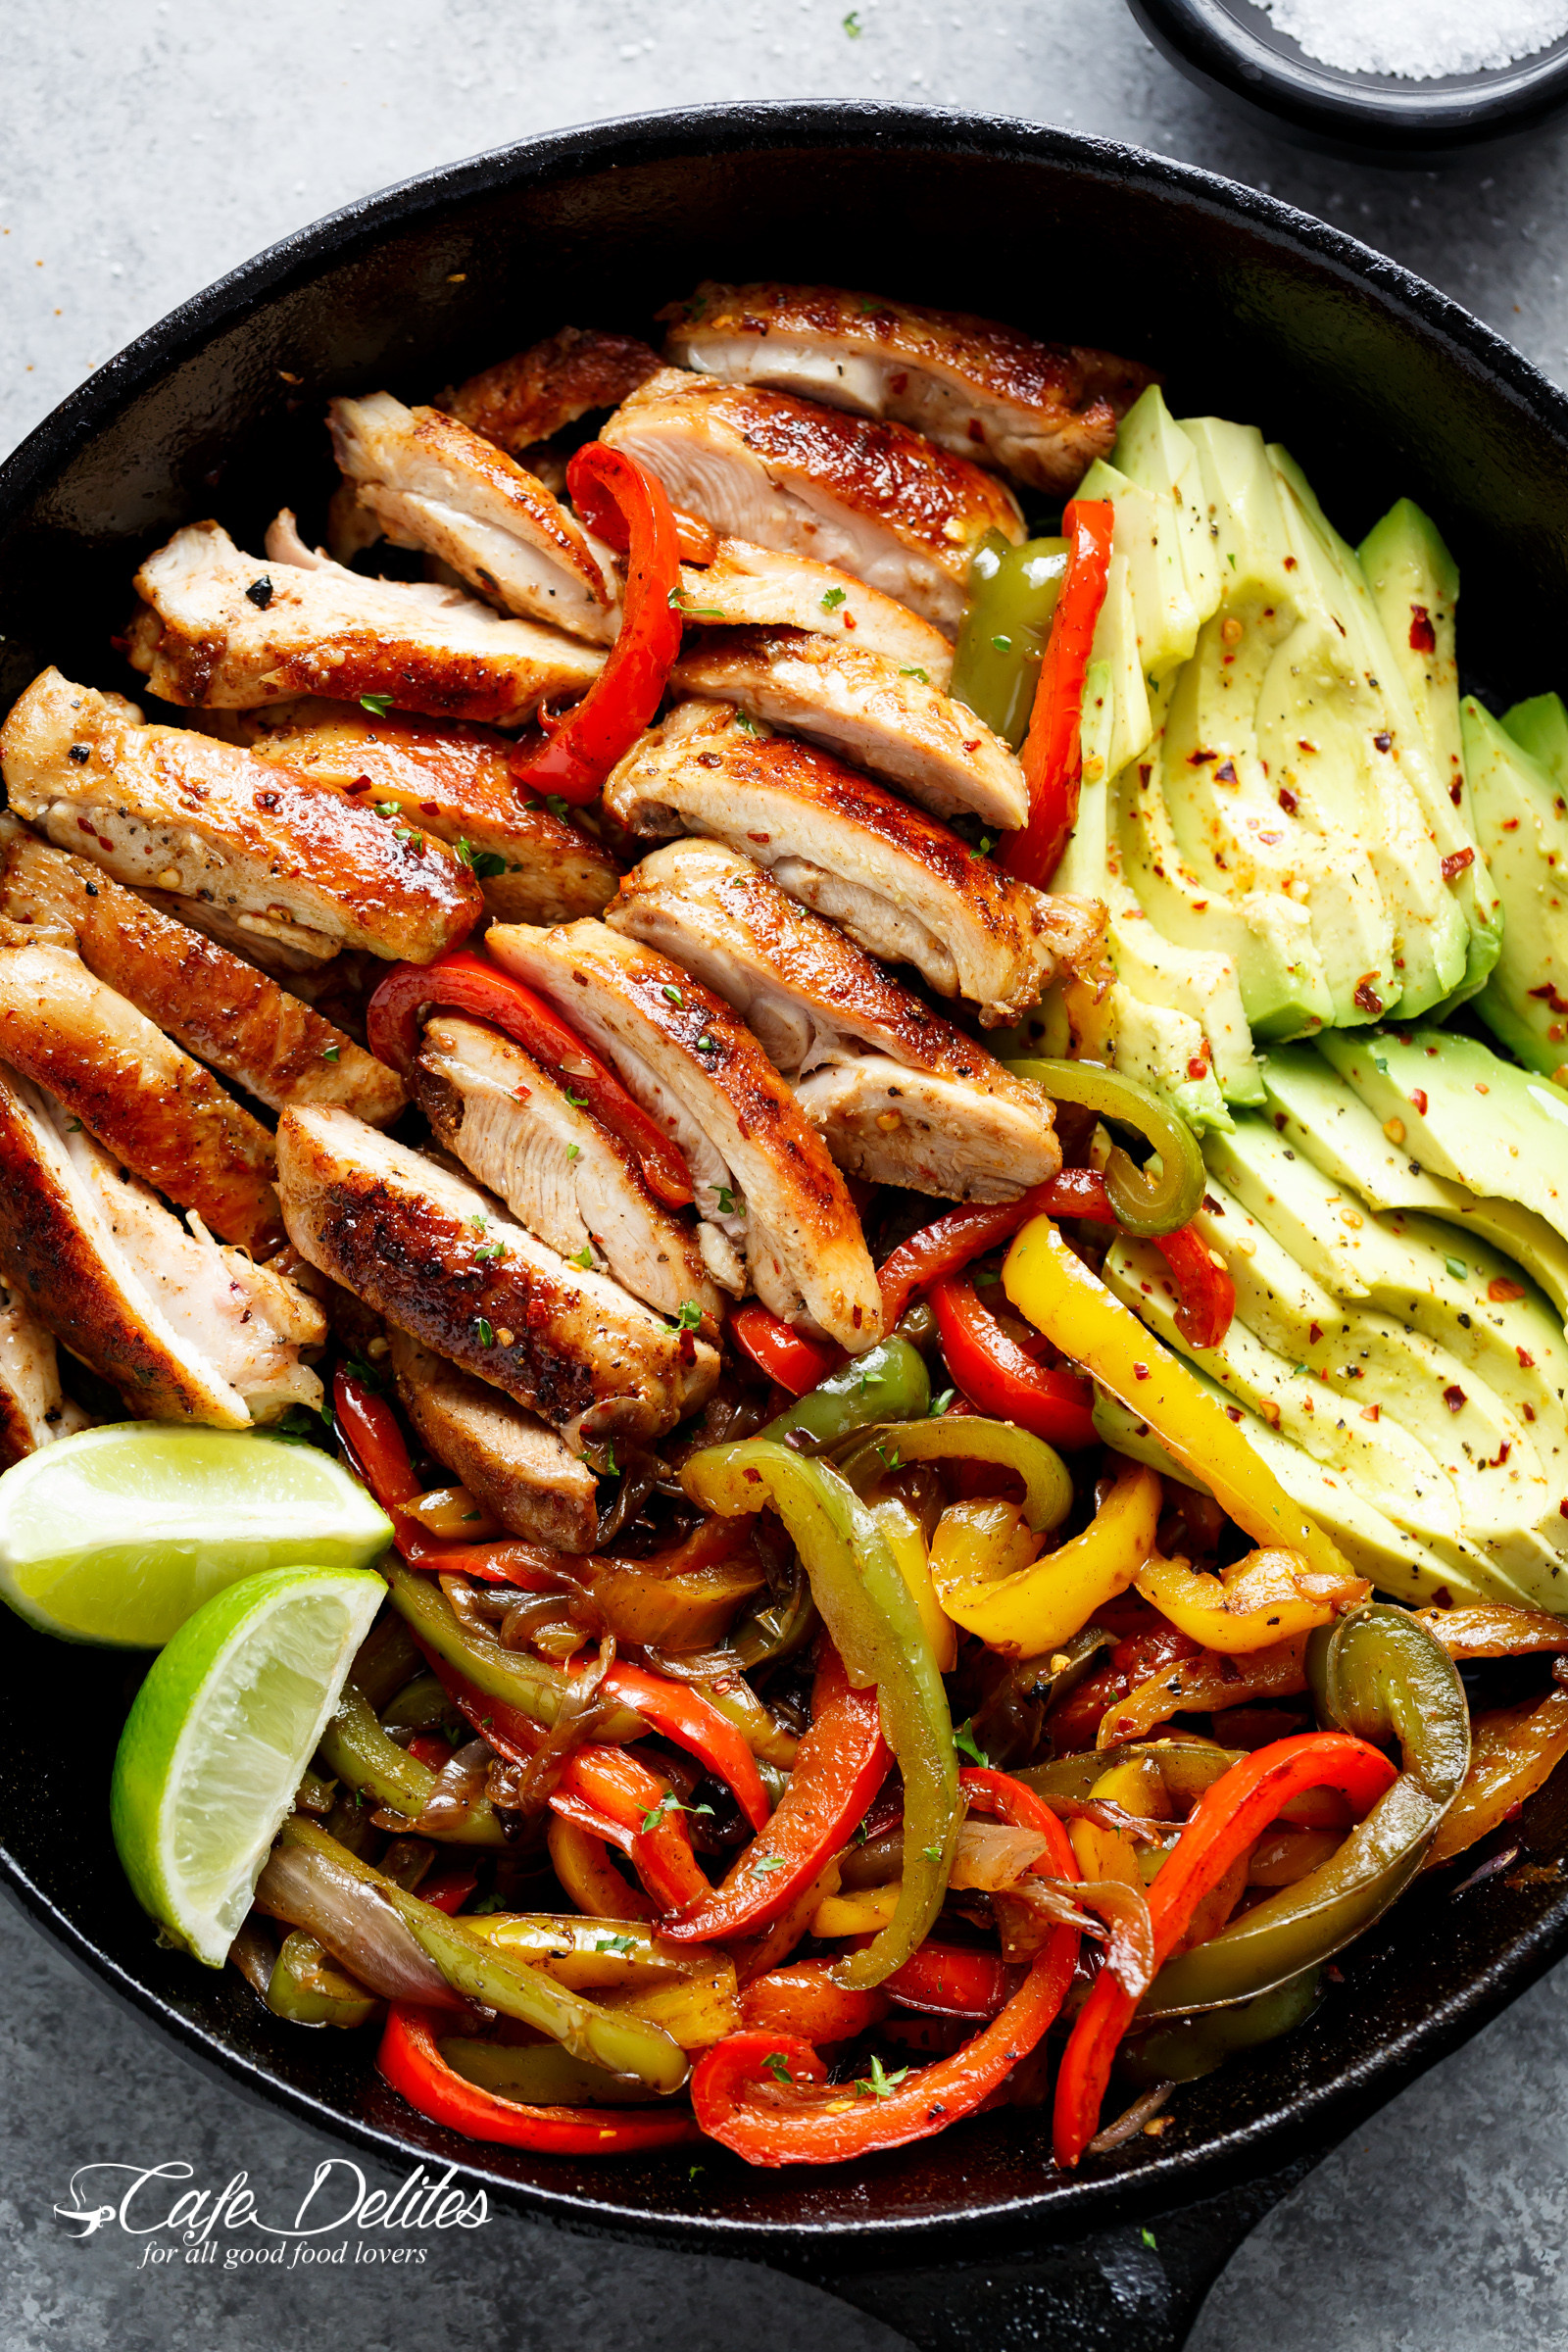 Mexican Chicken Fajita Recipes  Best Chicken Fajitas Cafe Delites TheDirtyGyro